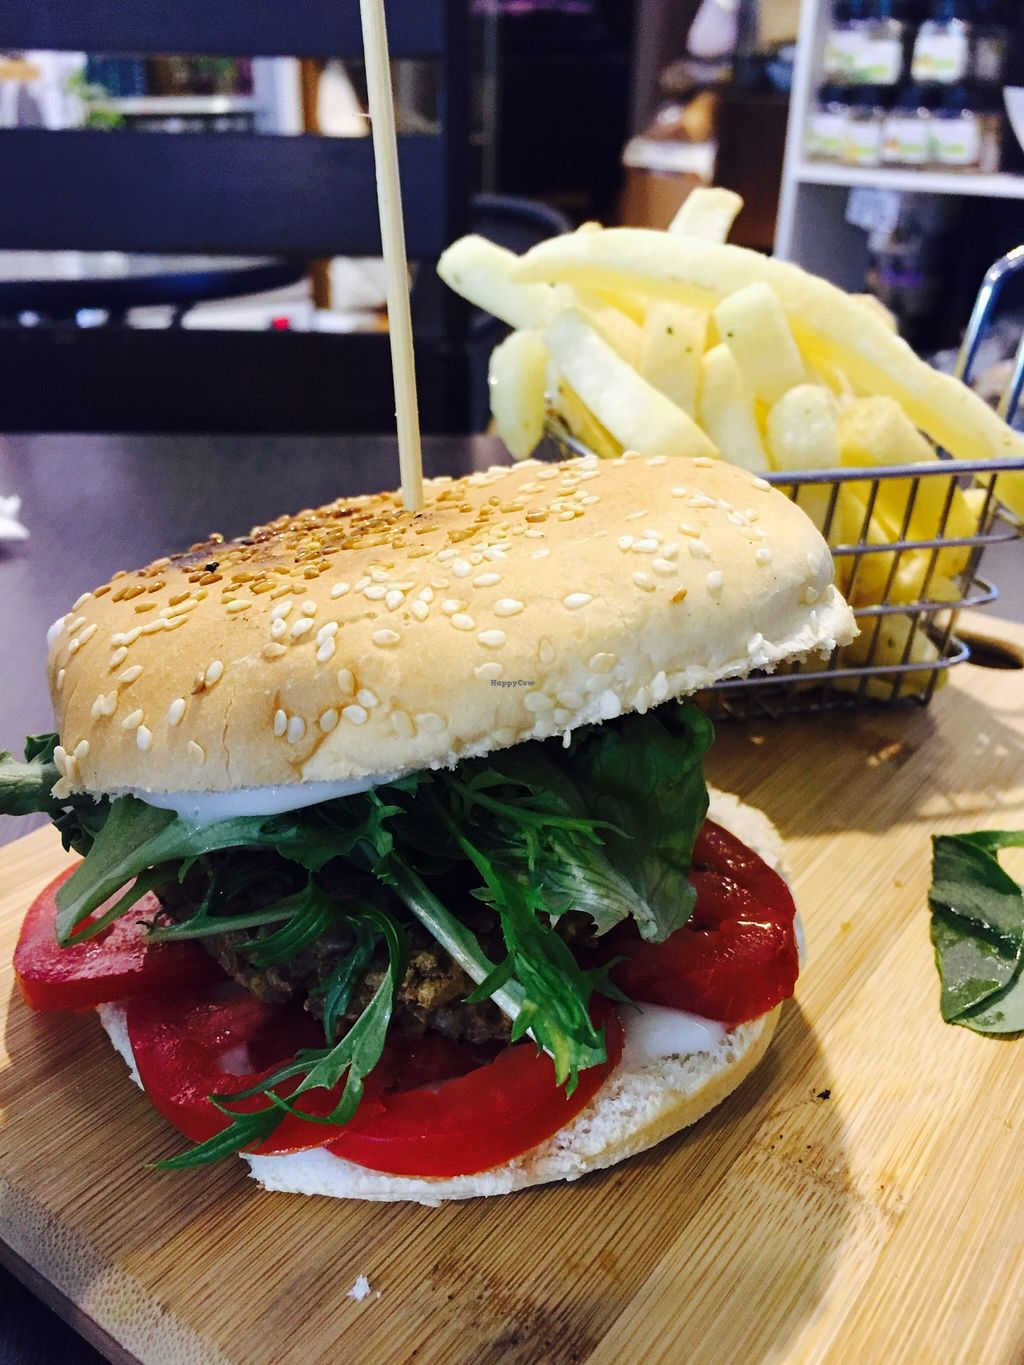 """Photo of CLOSED: Abitza  by <a href=""""/members/profile/karlaess"""">karlaess</a> <br/>Vegan Chickpea & Lentil burger <br/> December 11, 2015  - <a href='/contact/abuse/image/66922/127985'>Report</a>"""